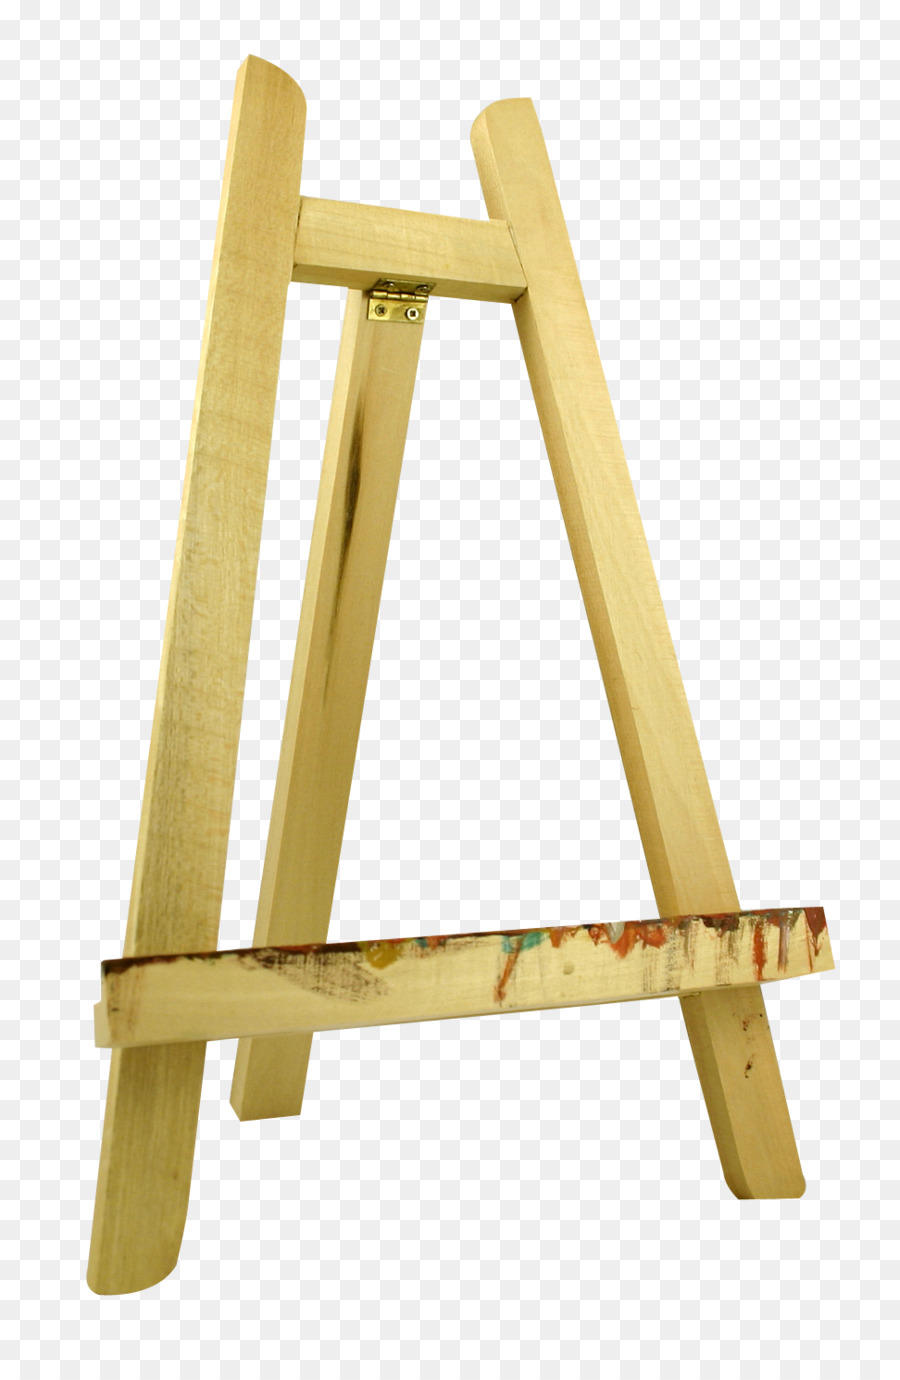 Easel Clip art - Display Easel png download - 972*1476 - Free ...